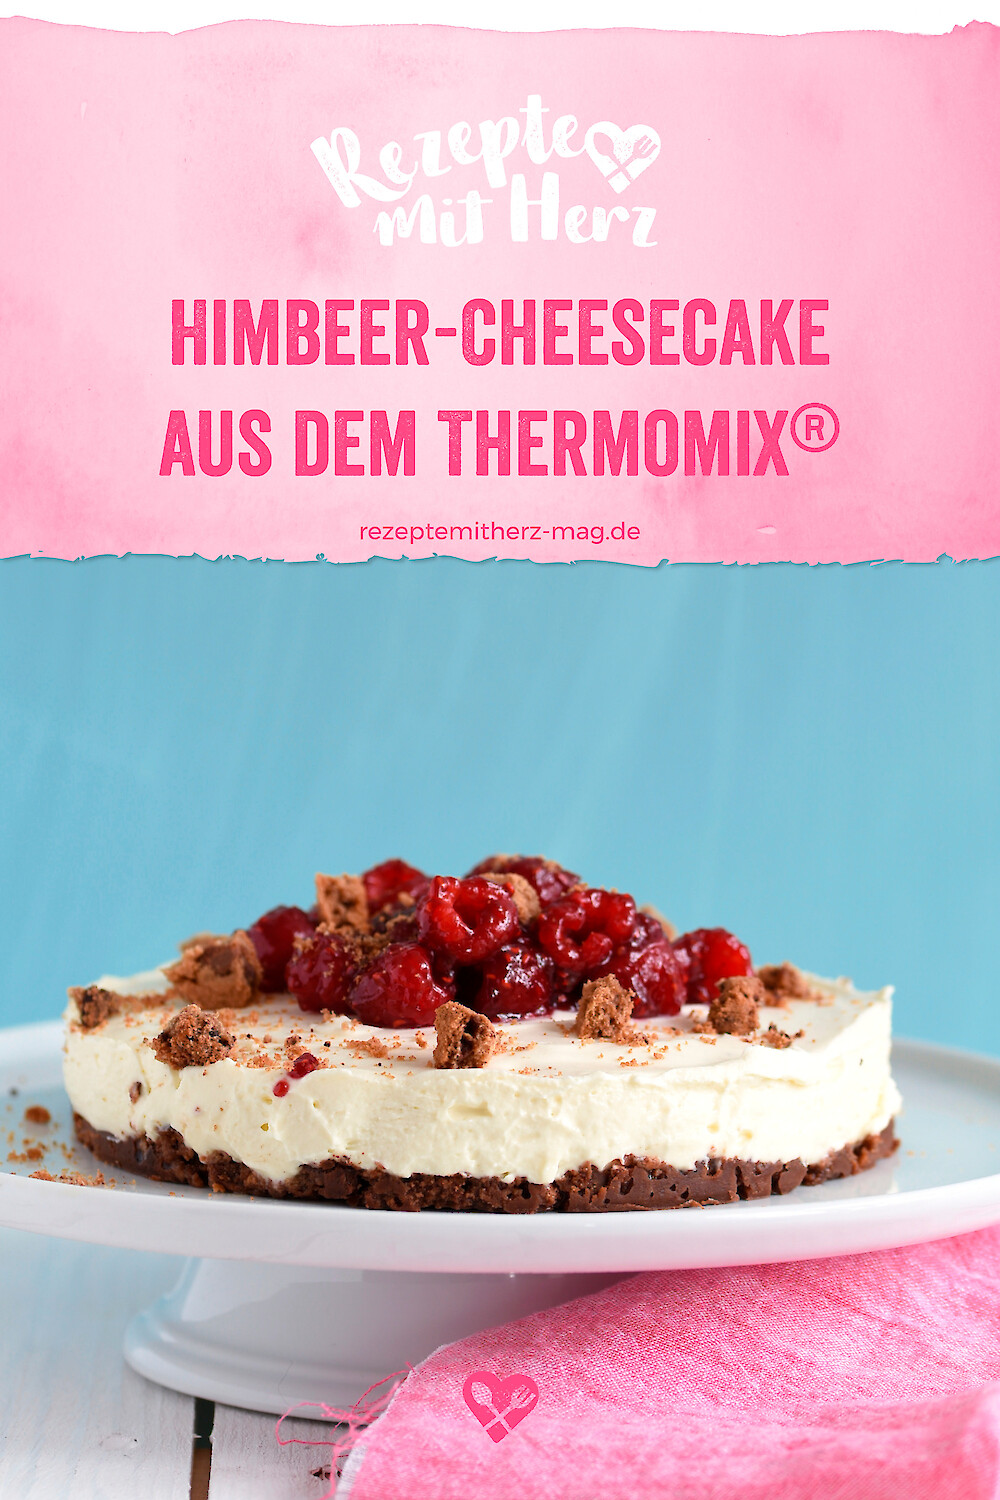 Himbeer-Cheesecake aus dem Thermomix®